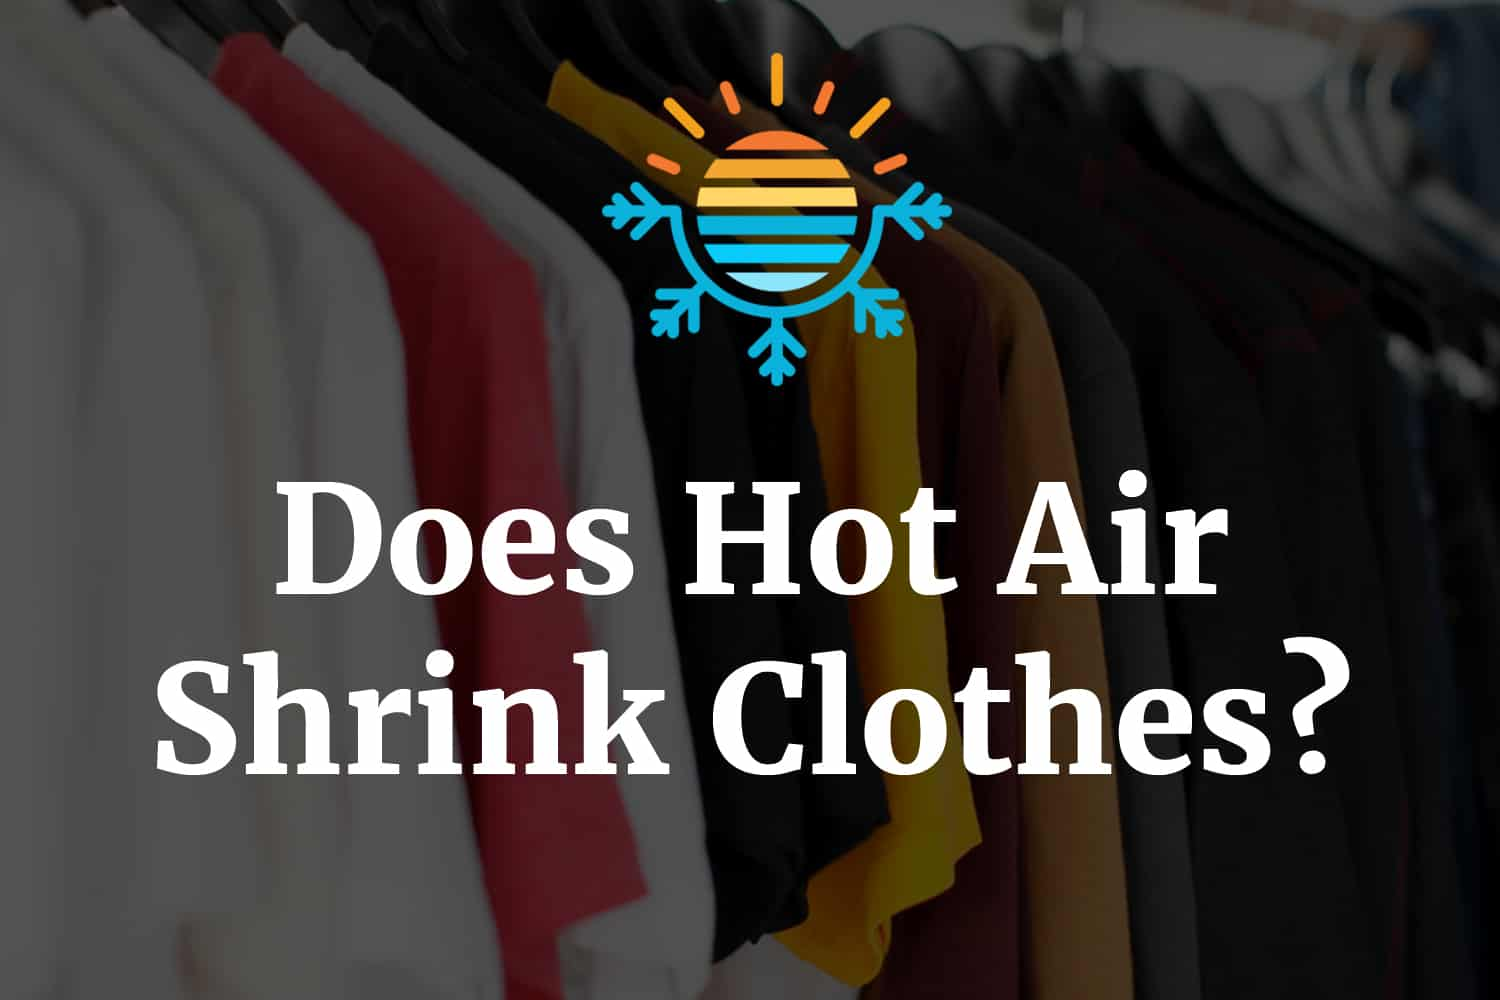 Does hot air shrink clothes